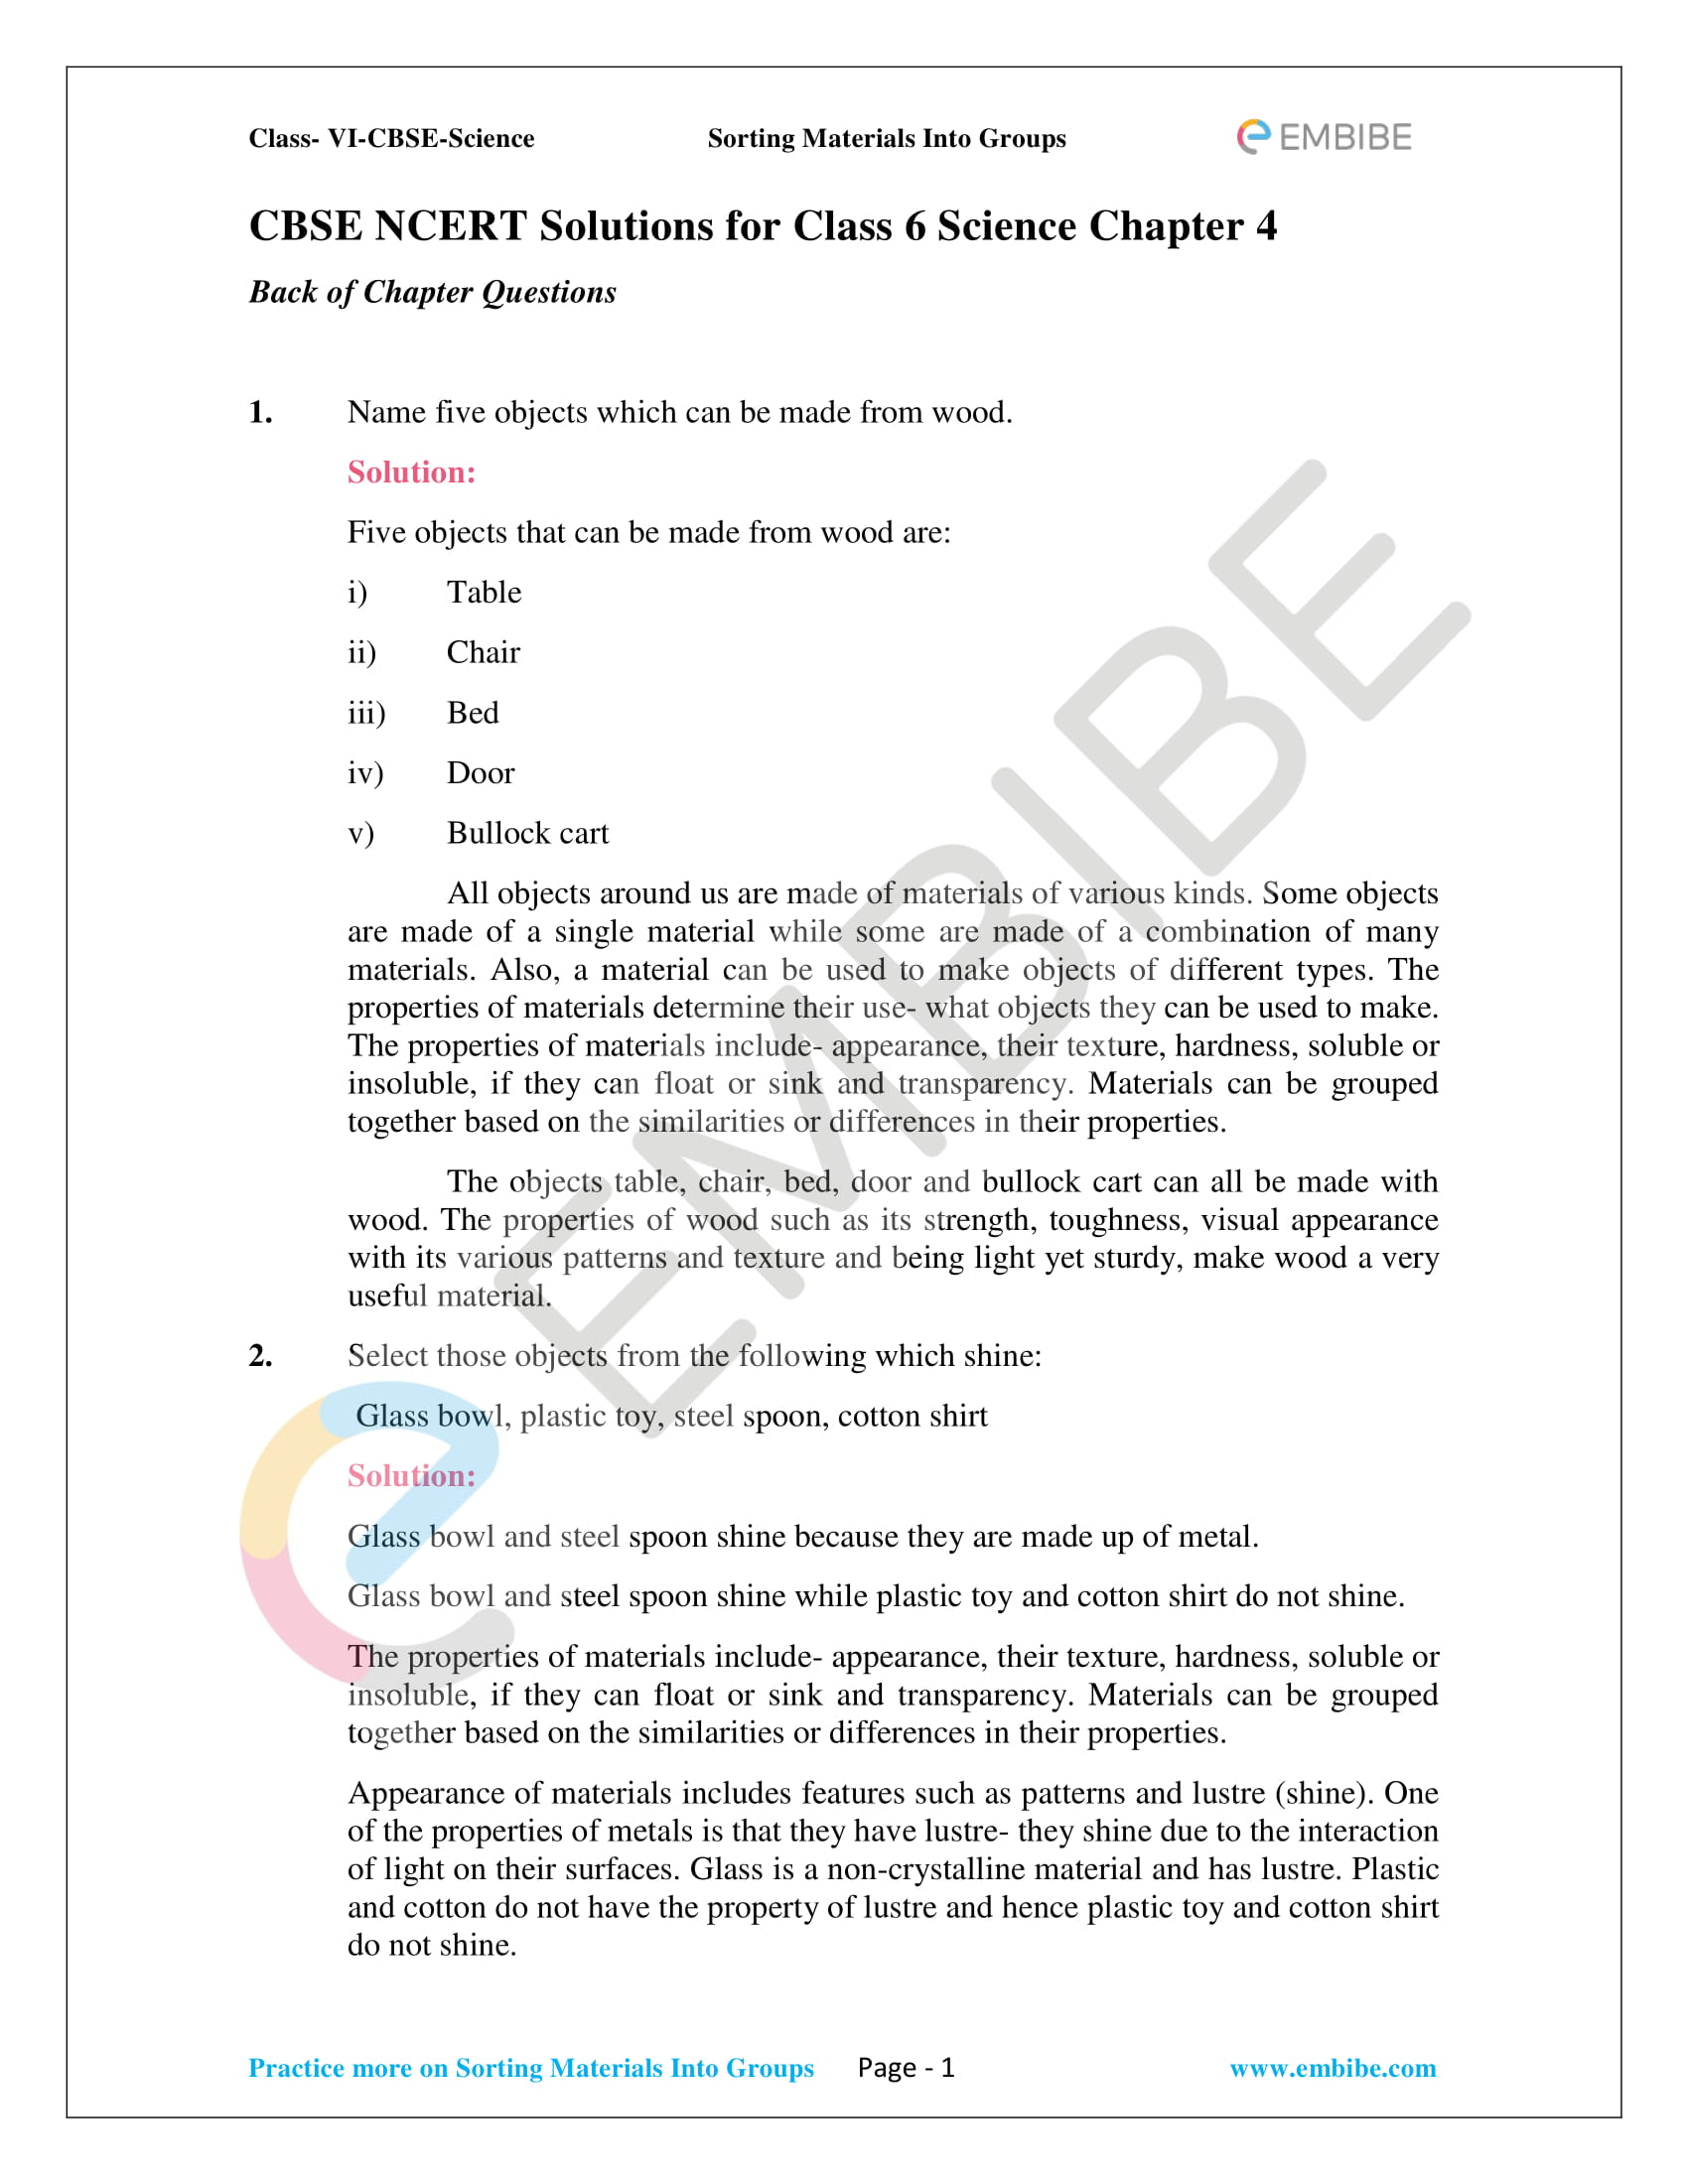 NCERT Solutions For Class 6 Science Chapter 4 - Sorting Materials Into Groups PDF - 1